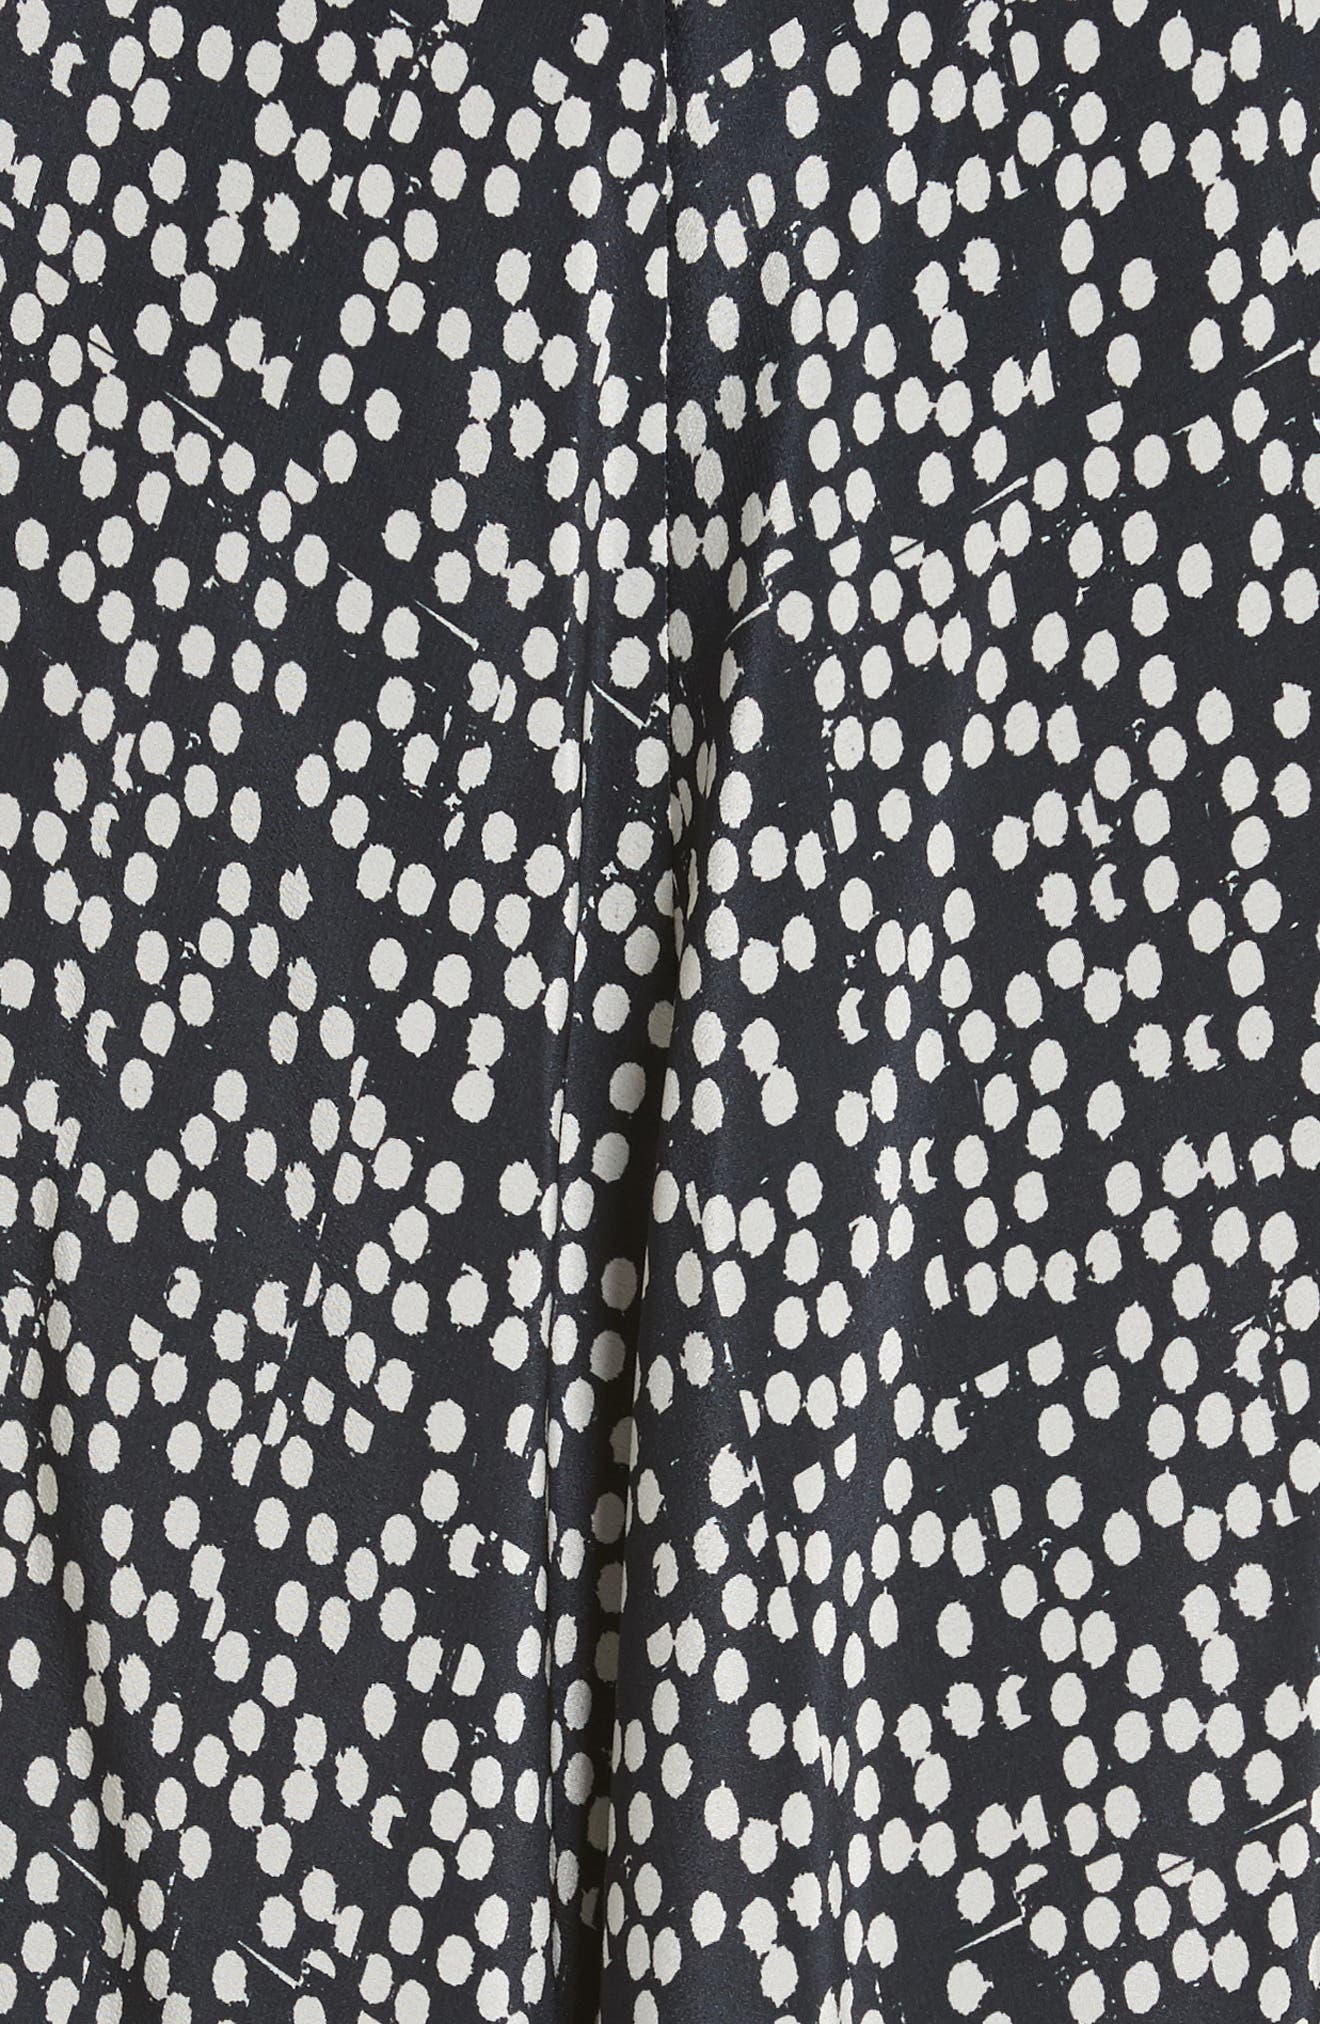 Peter Dot Print Midi Dress,                             Alternate thumbnail 6, color,                             Black